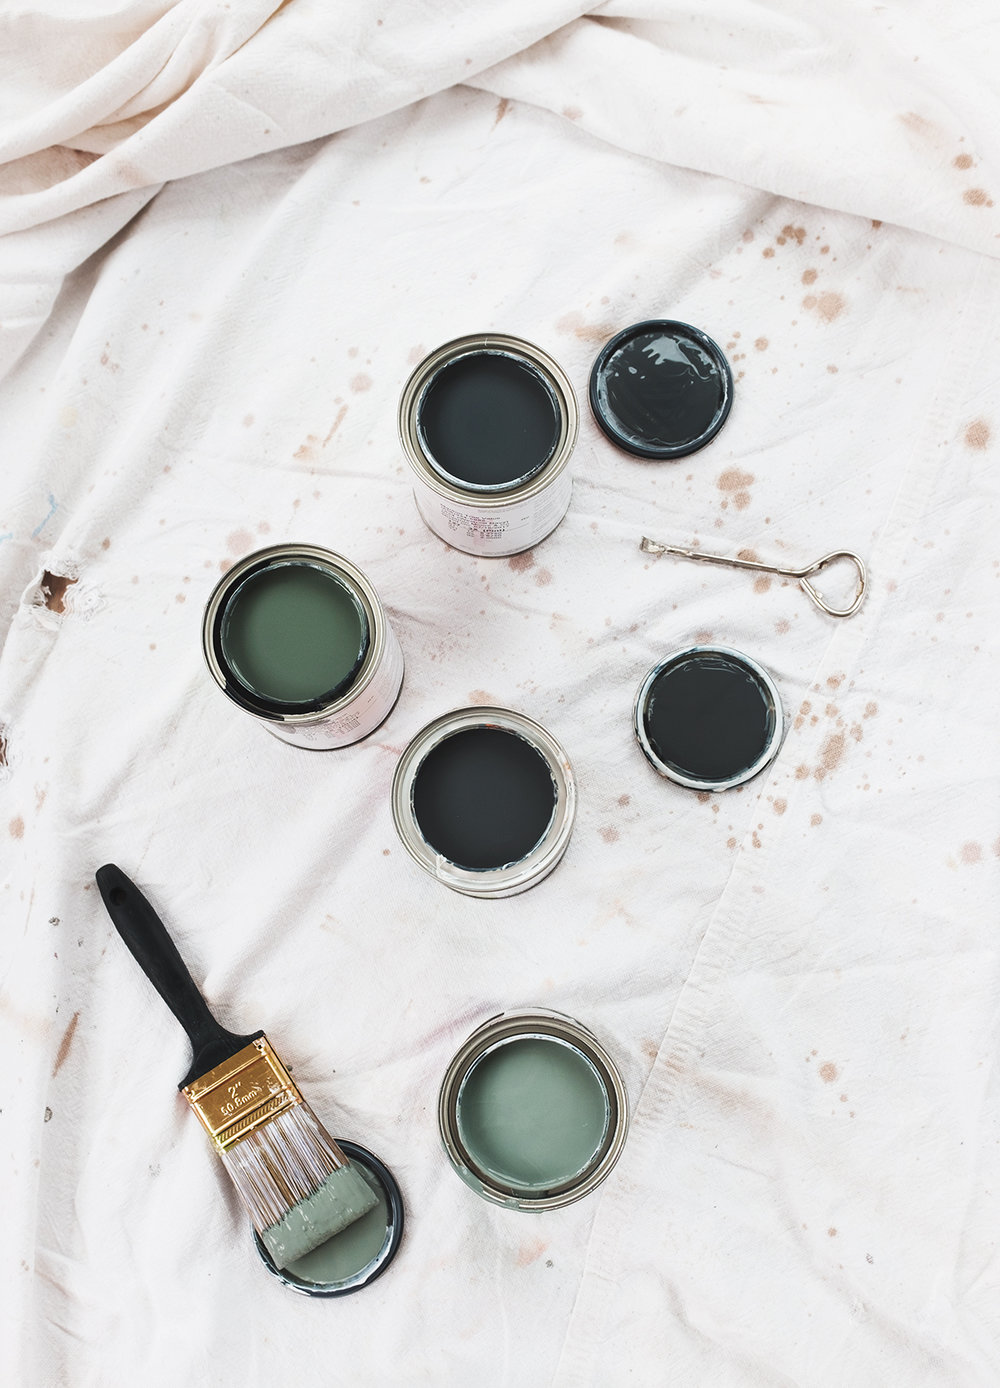 paint + progress - paint swatches that make the whole process a lot more fun